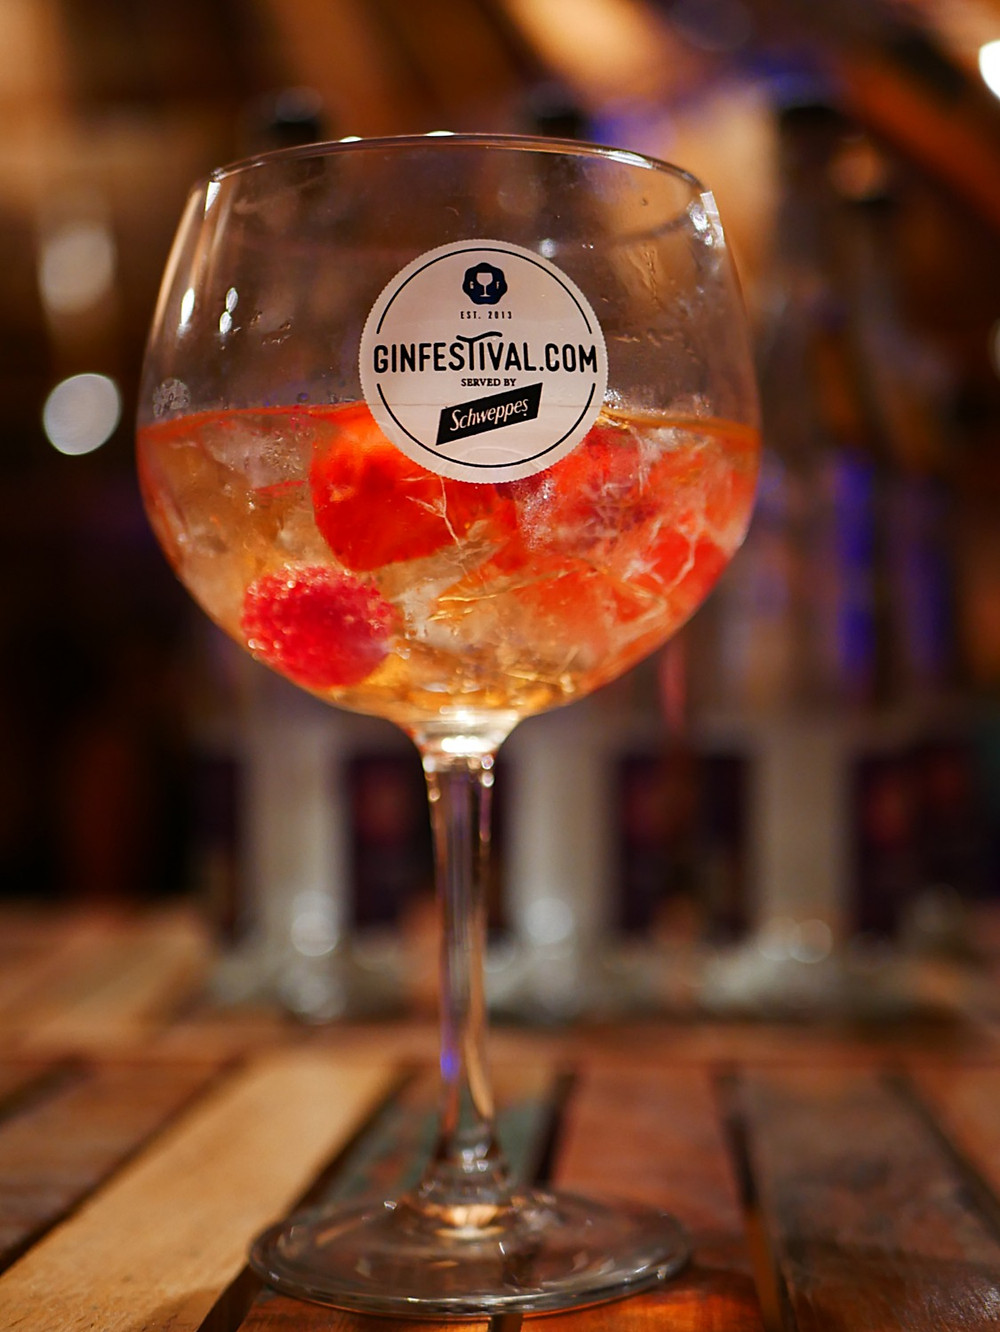 Strawberry gin in a balloon glass